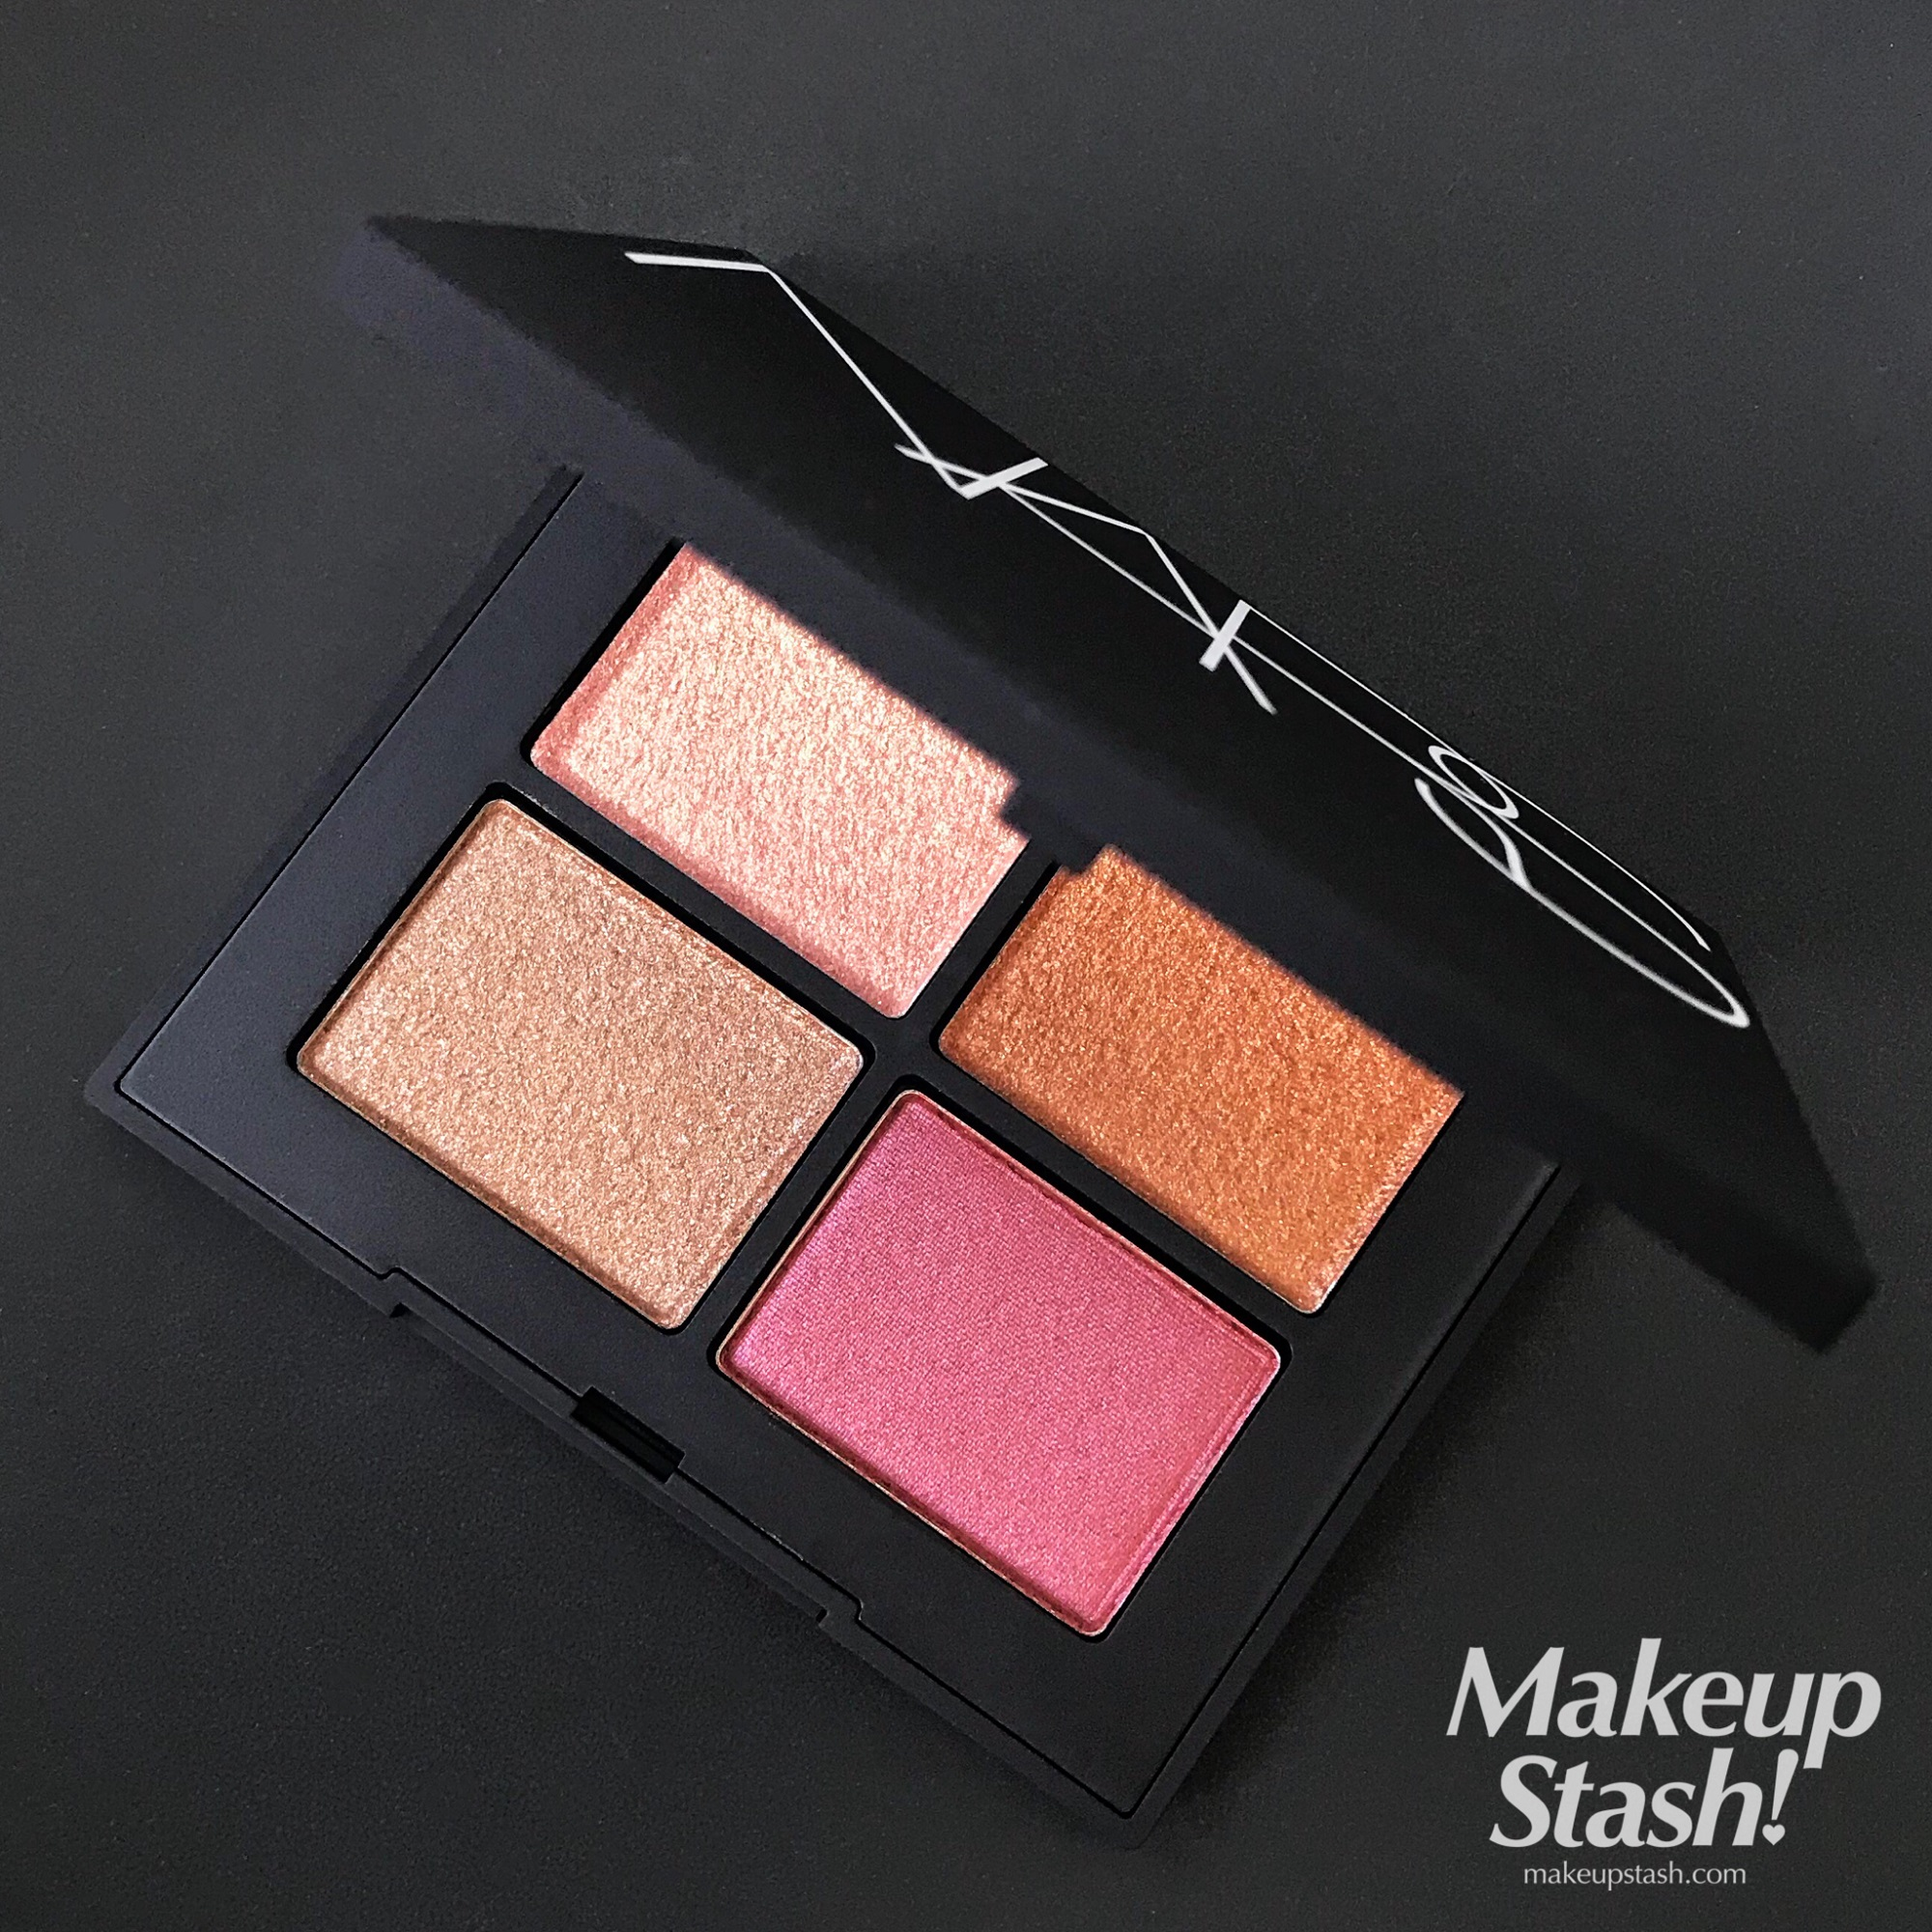 Review | NARS Quad Eyeshadow in Singapore